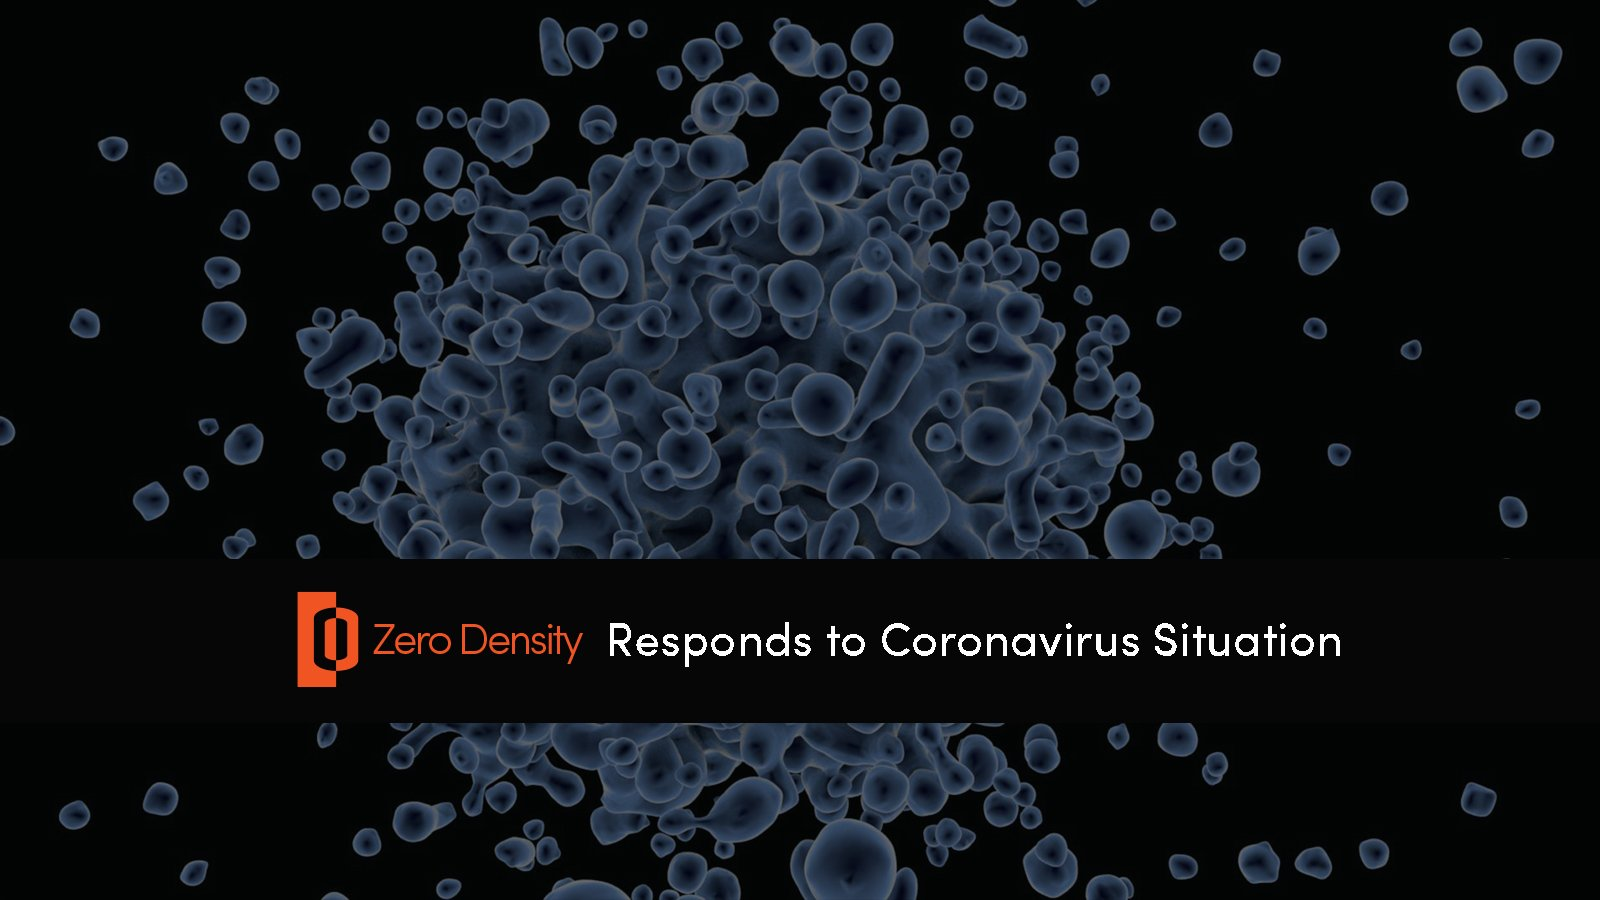 Zero Density responds to Coronavirus Situation